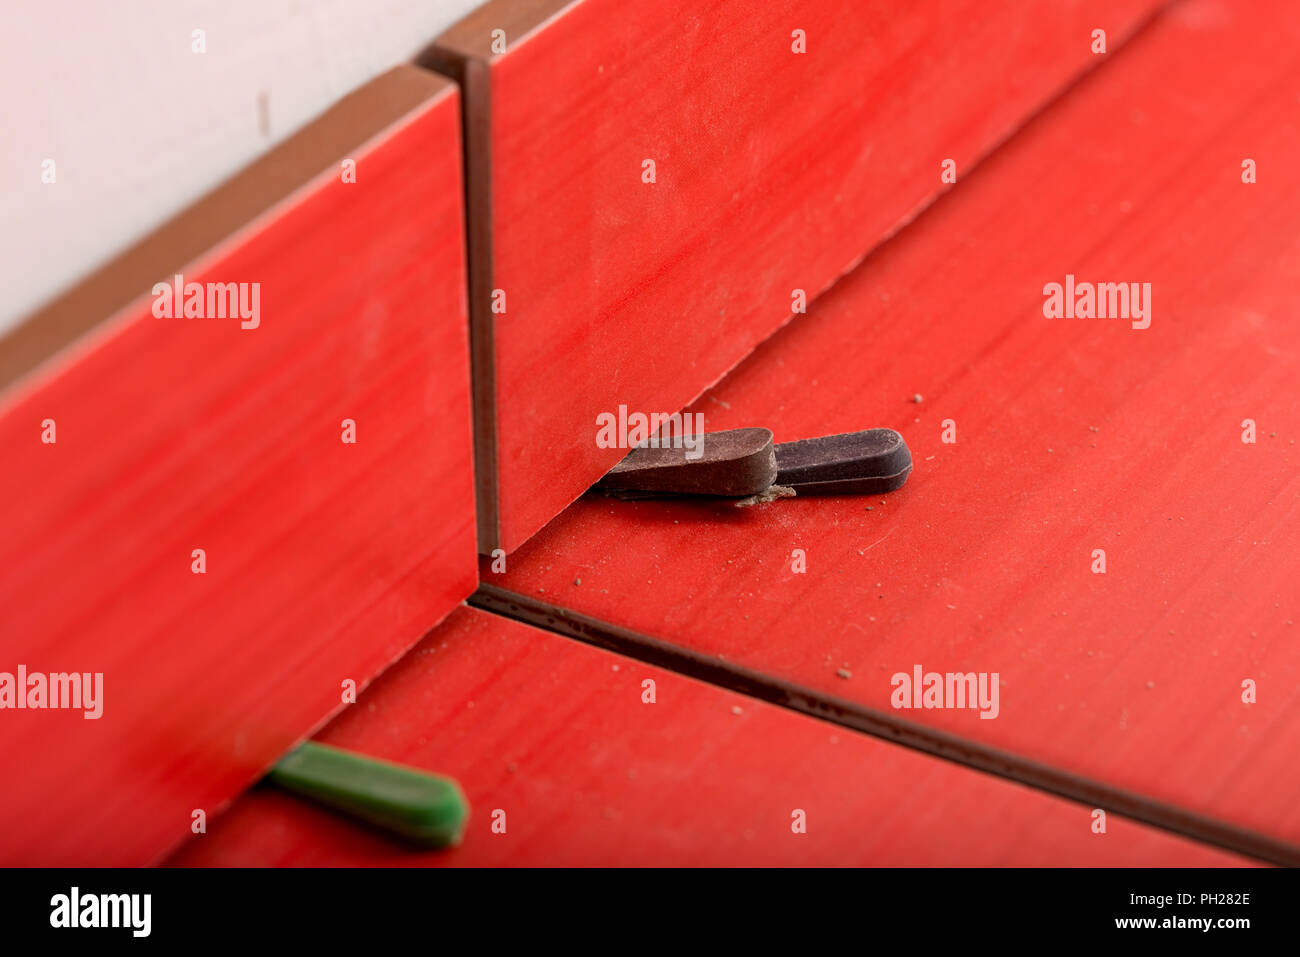 Close up view of bottom spacers used in tiling a wall to ensure an even gap for the grout between the tiles in a DIY and renovation concept. - Stock Image